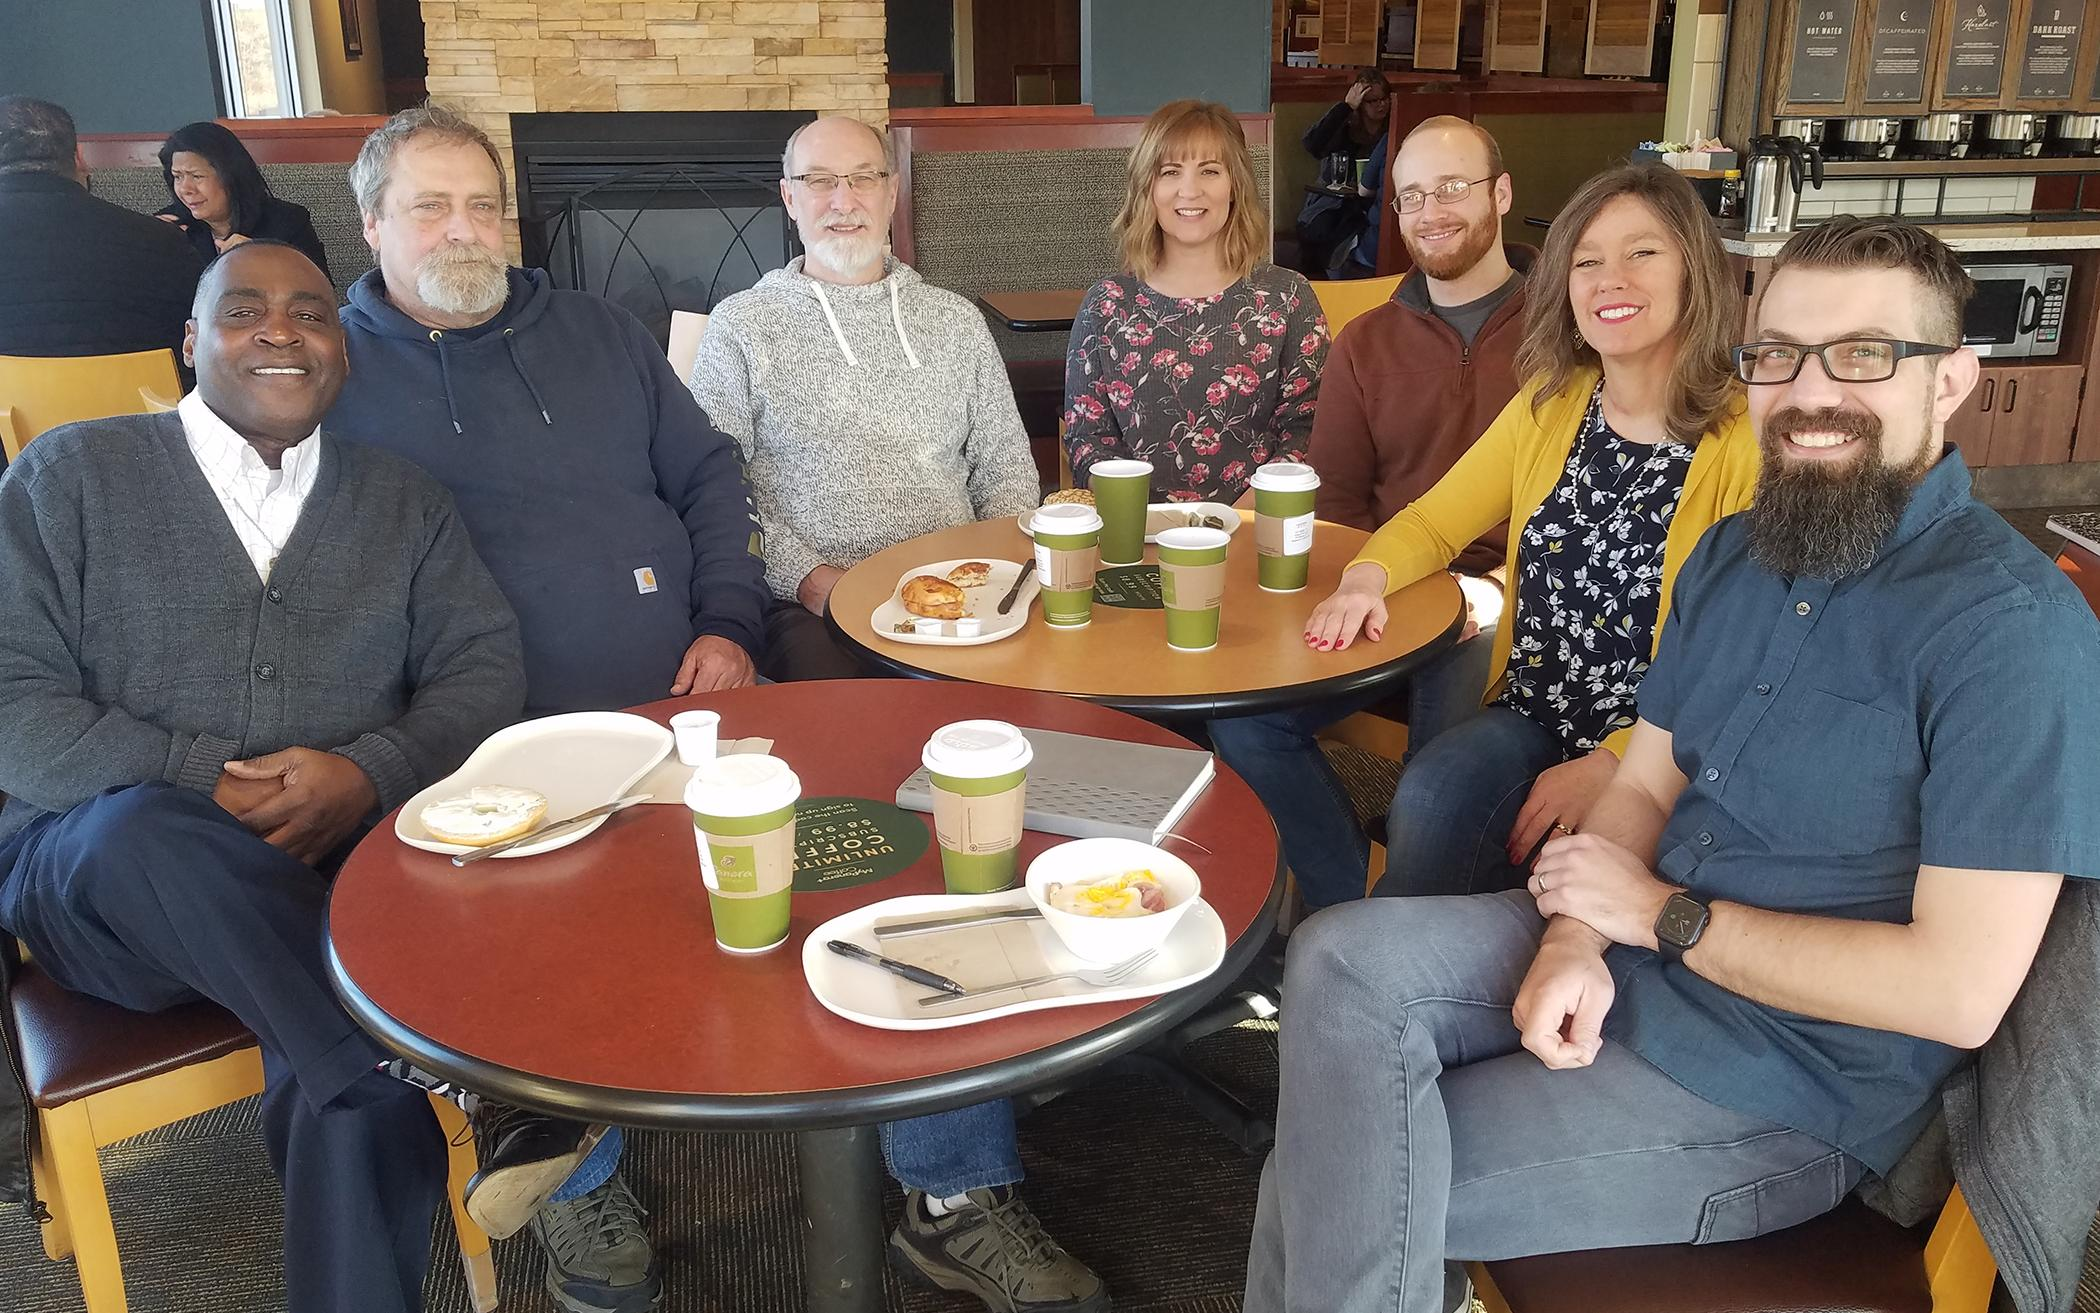 Peer Learning Grant Helps Pastors Share Their Challenges